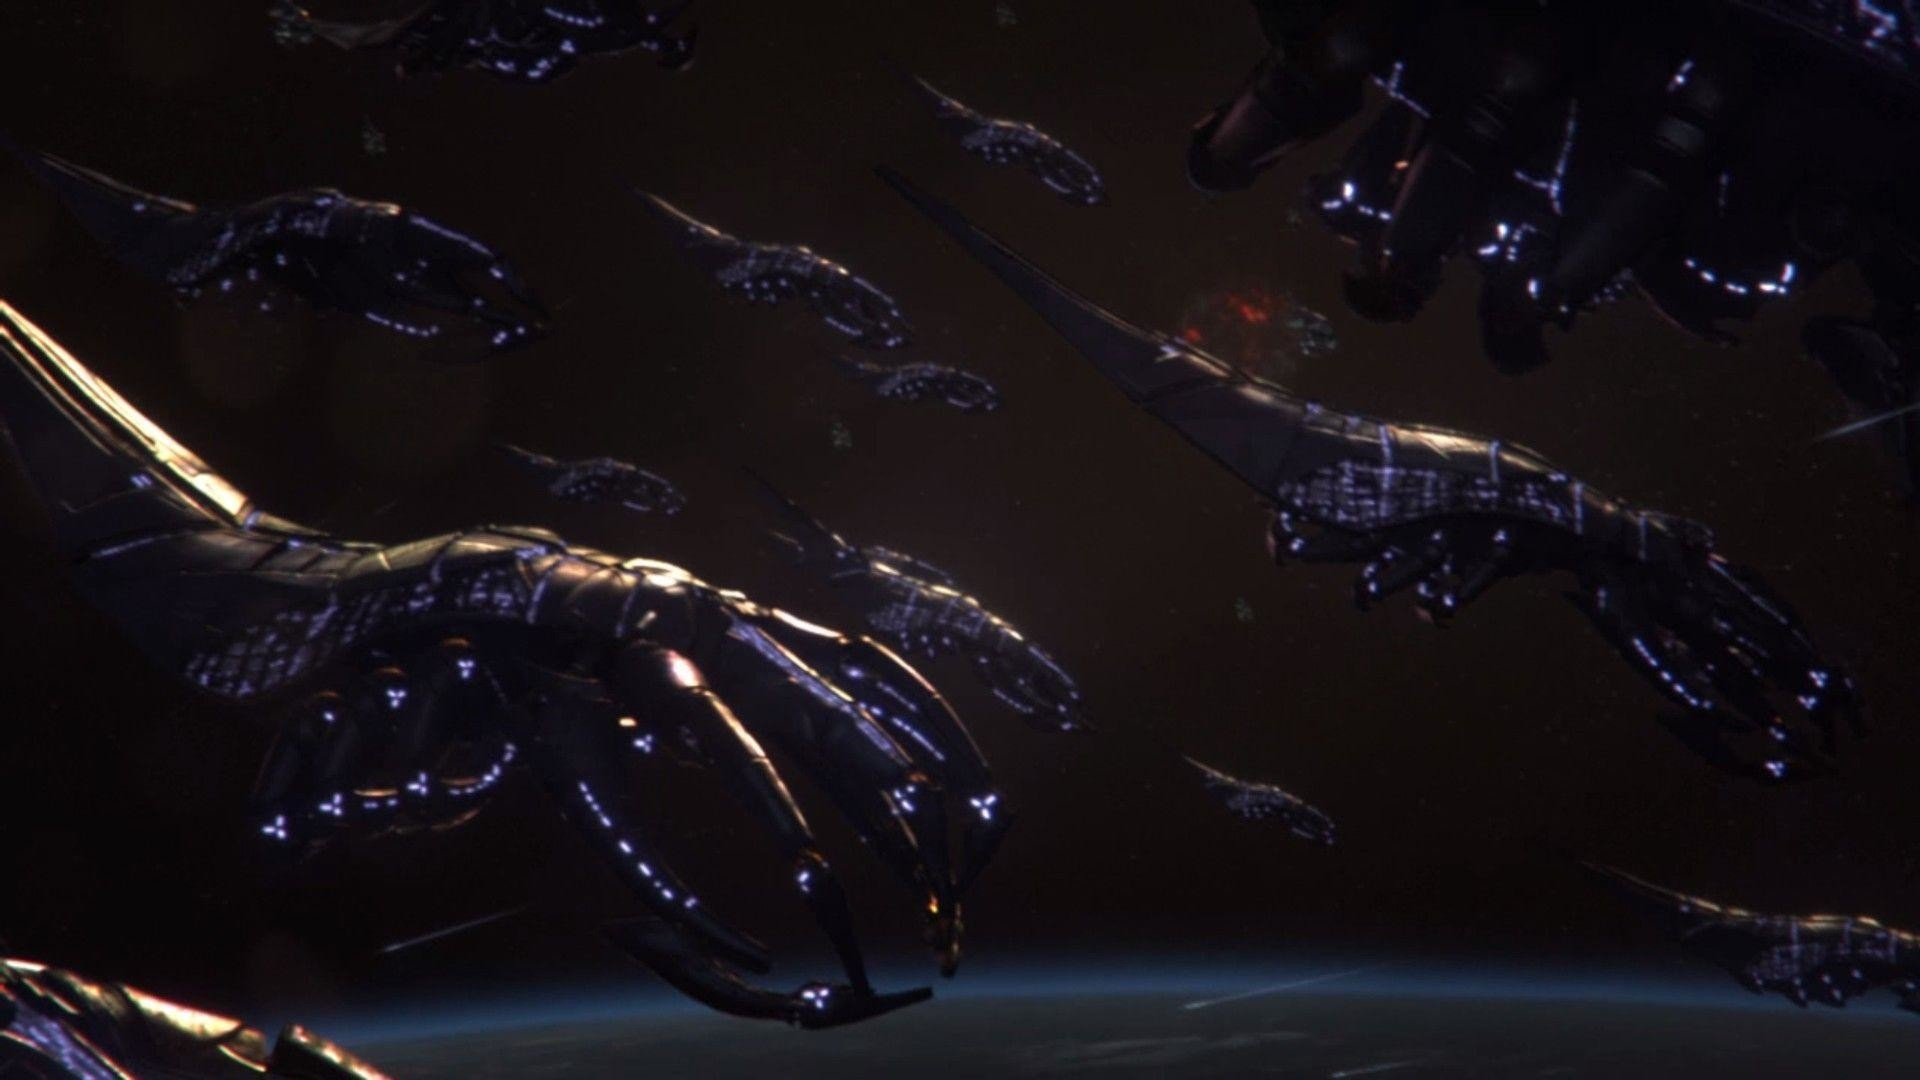 Res: 1920x1080, Mass Effect Shep's Force/Reapers vs Halo UNSC/Covenant. - Battles .